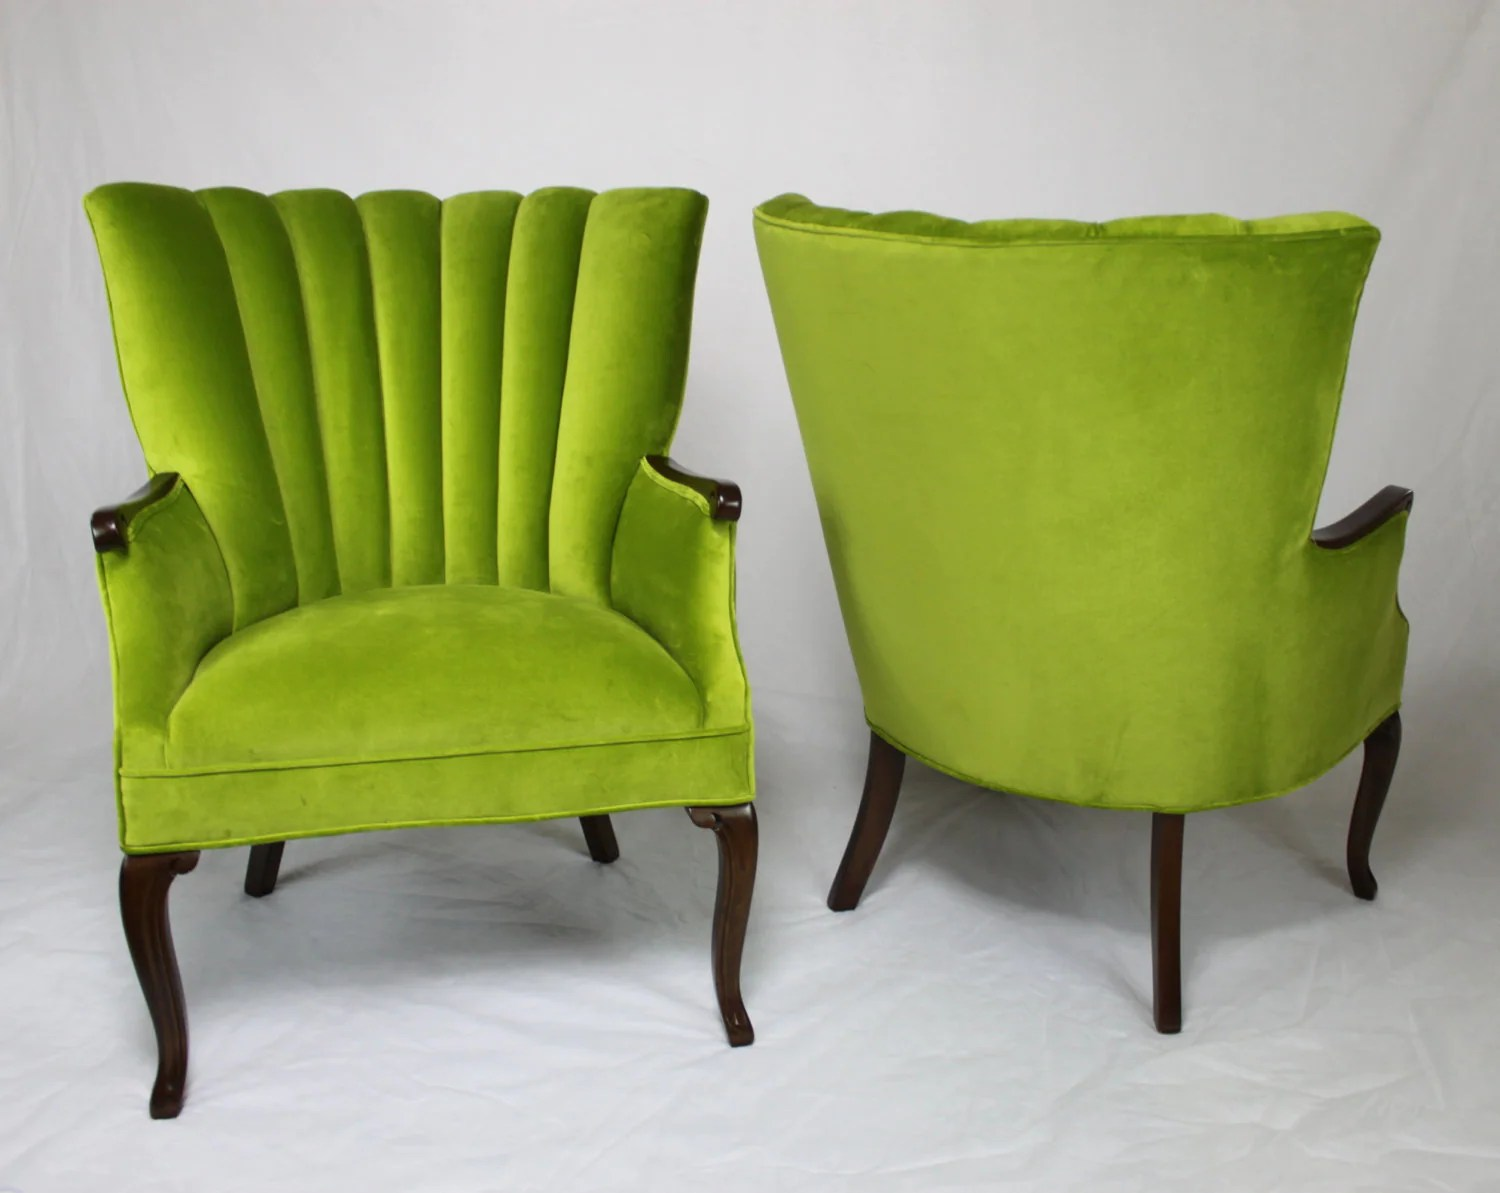 Lime Green Chairs Sold Pair Of Vintage Antique Channel Back Chairs In Apple Green Velvet With Medium Brown Wood Lime Green Grass Green Bright Green